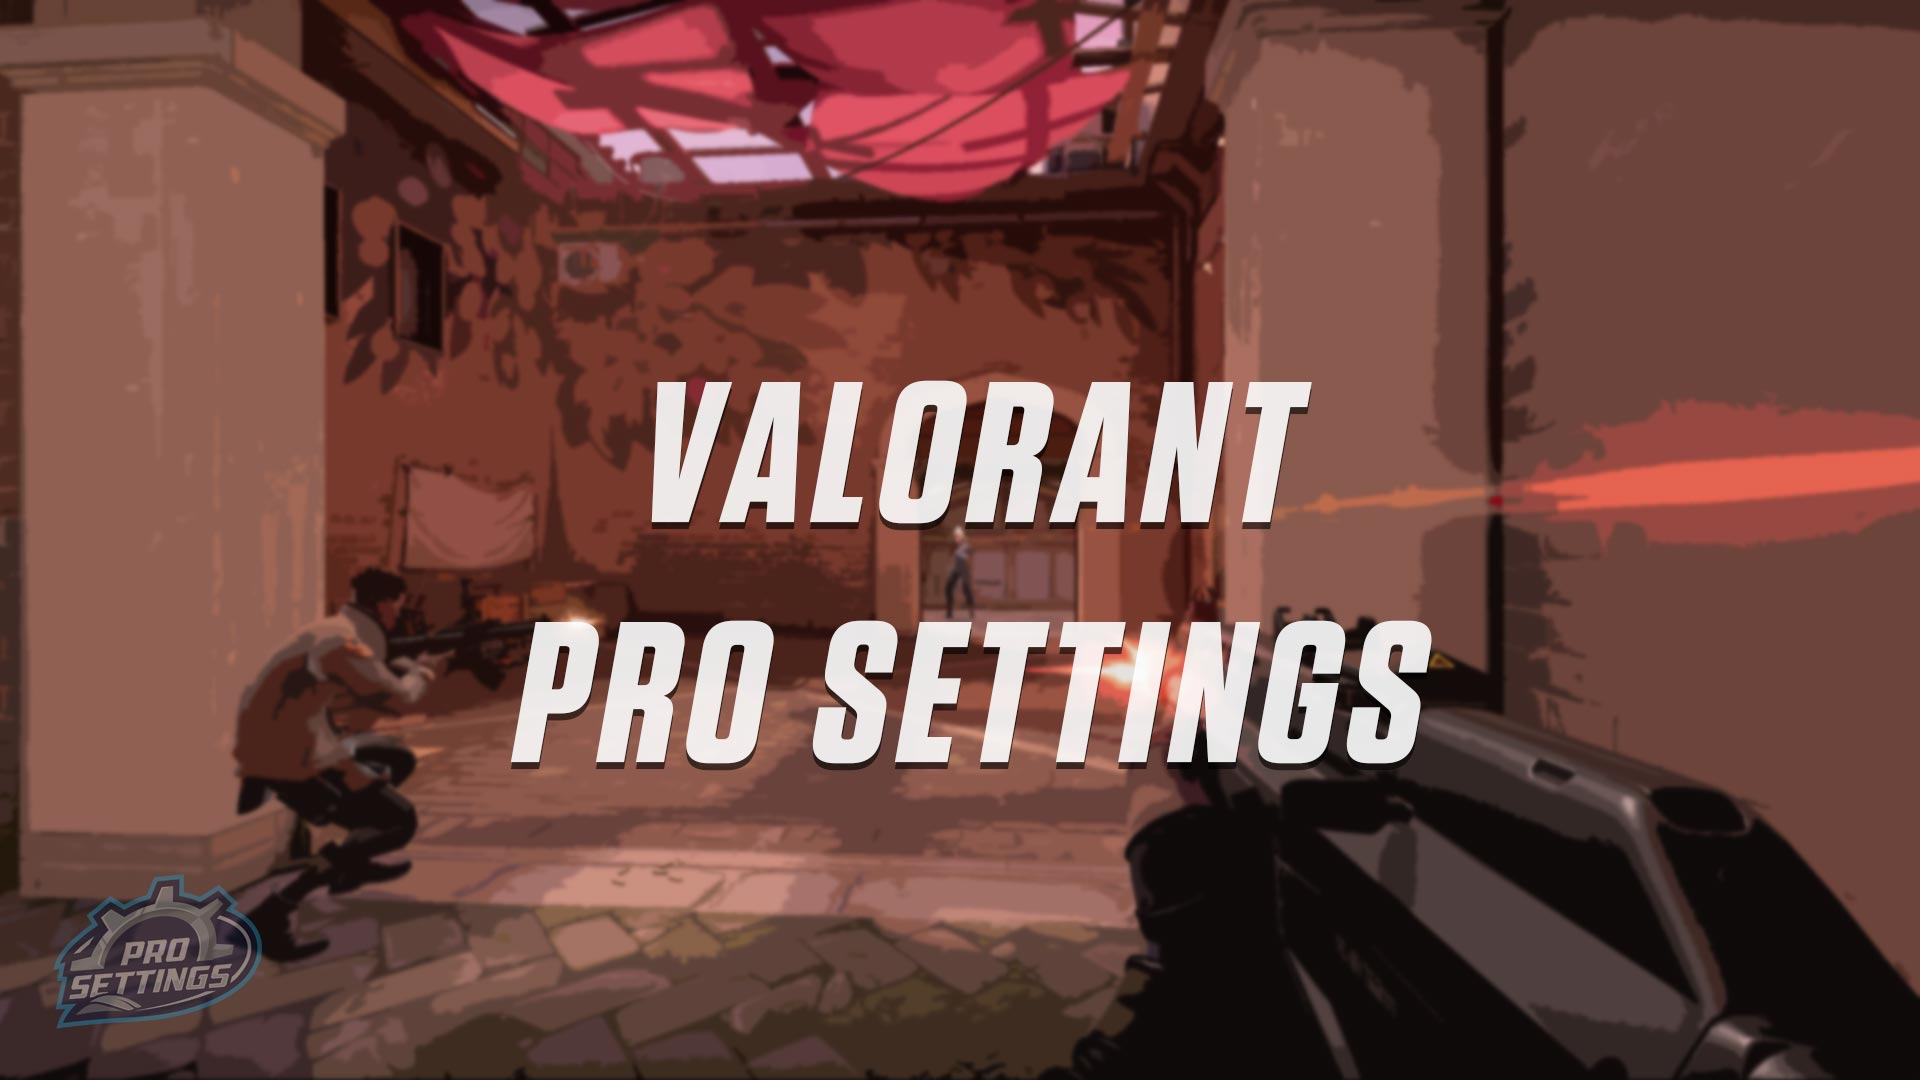 Best Valorant Pro Settings Sensitivity Keybinds Setup Updated 2020 We research the monitors, mice, and other gaming peripherals of. best valorant pro settings sensitivity